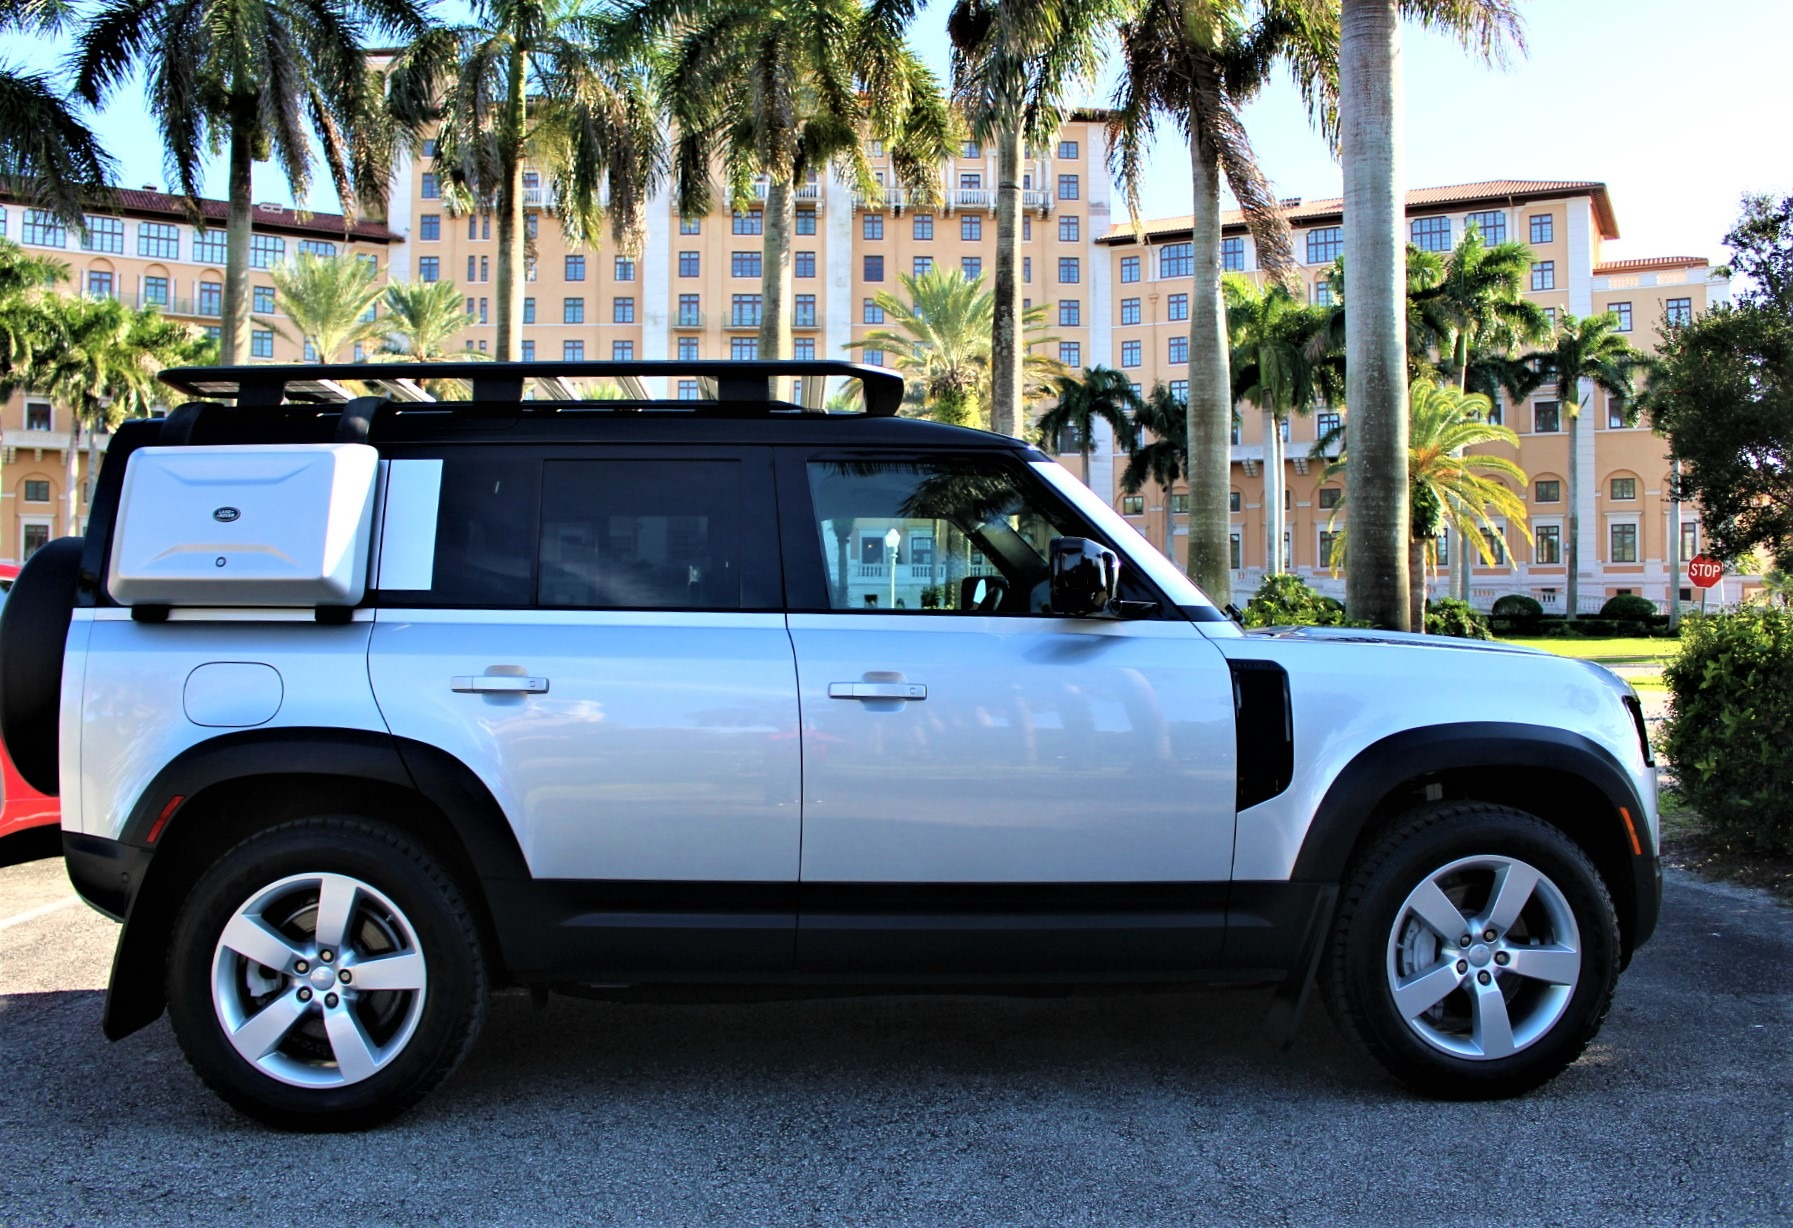 Used 2020 Land Rover Defender 110 HSE FIRST EDITION for sale $93,850 at The Gables Sports Cars in Miami FL 33146 1